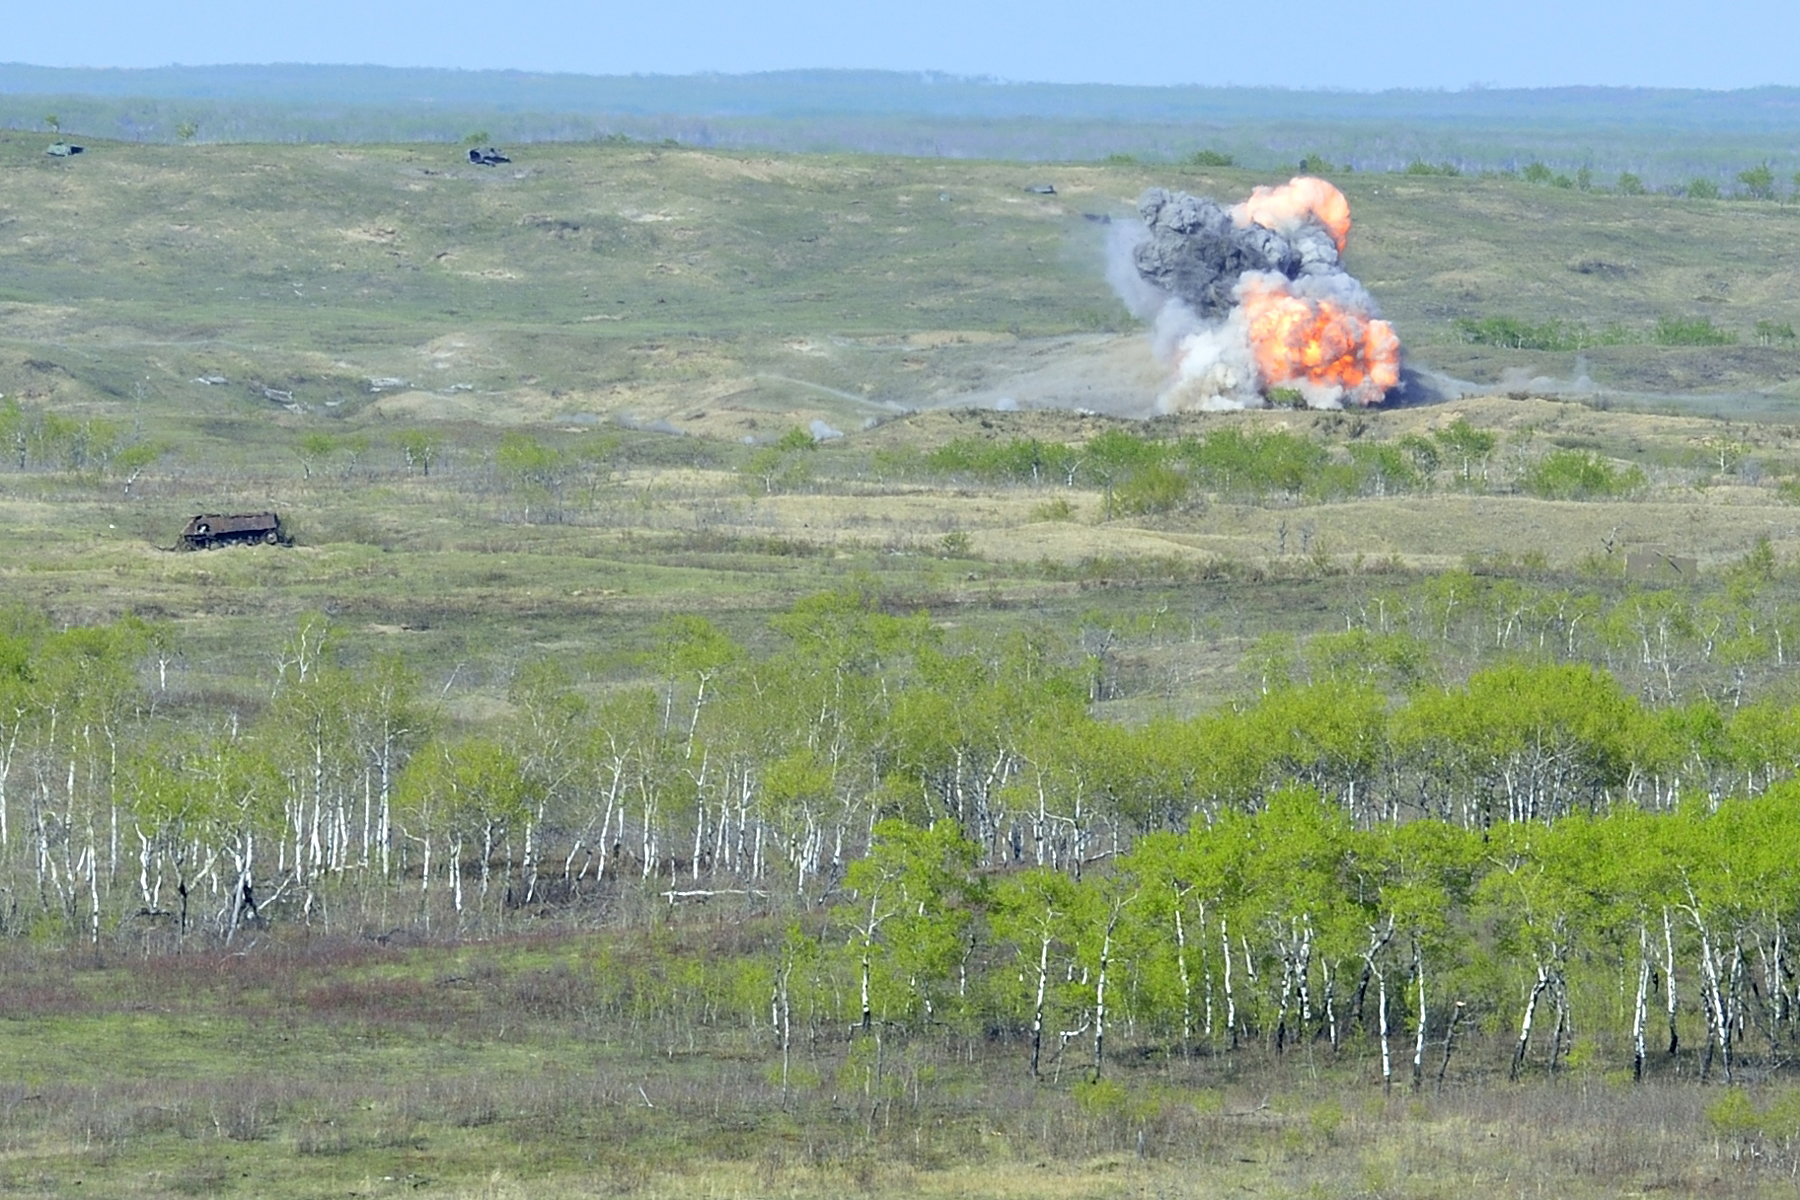 A CF-18 Hornet drops a 300lb bomb amid the rolling hills of CFB Wainwright's vast training area as part of EX MAPLE RESOLVE on May 6, 2015. The exercise, which simulates a large-scale conflict environment, is the largest annual Army exercise in Canada, drawing close to 5,200 Canadian soldiers and 700 members of the Royal Canadian Air Force, along with 700 American troops and 150 British soldiers. (Cpl True-Dee McCarthy, DND)